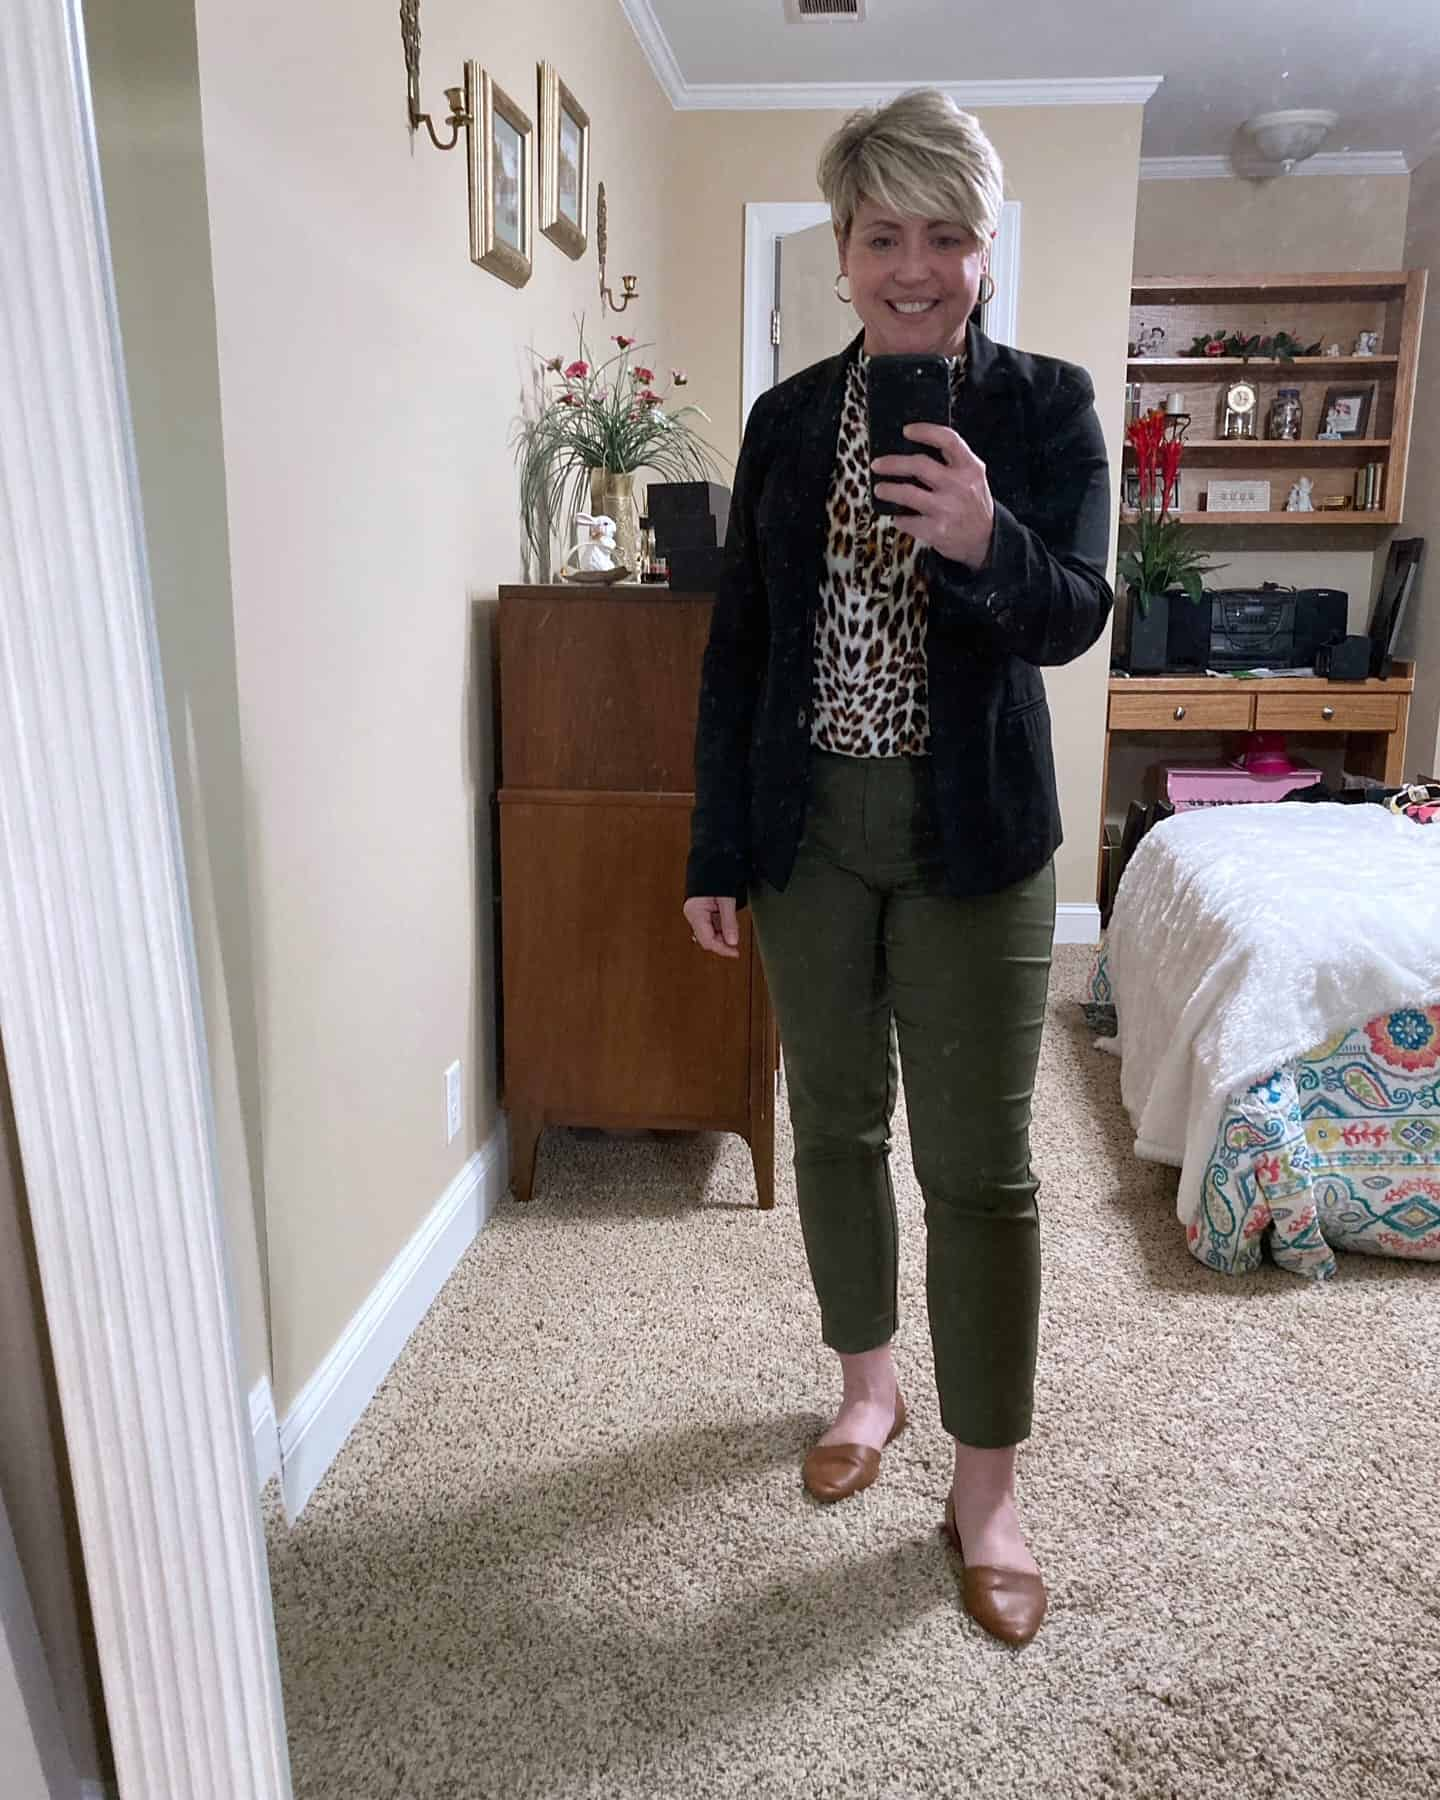 olive pants workwear outfit idea